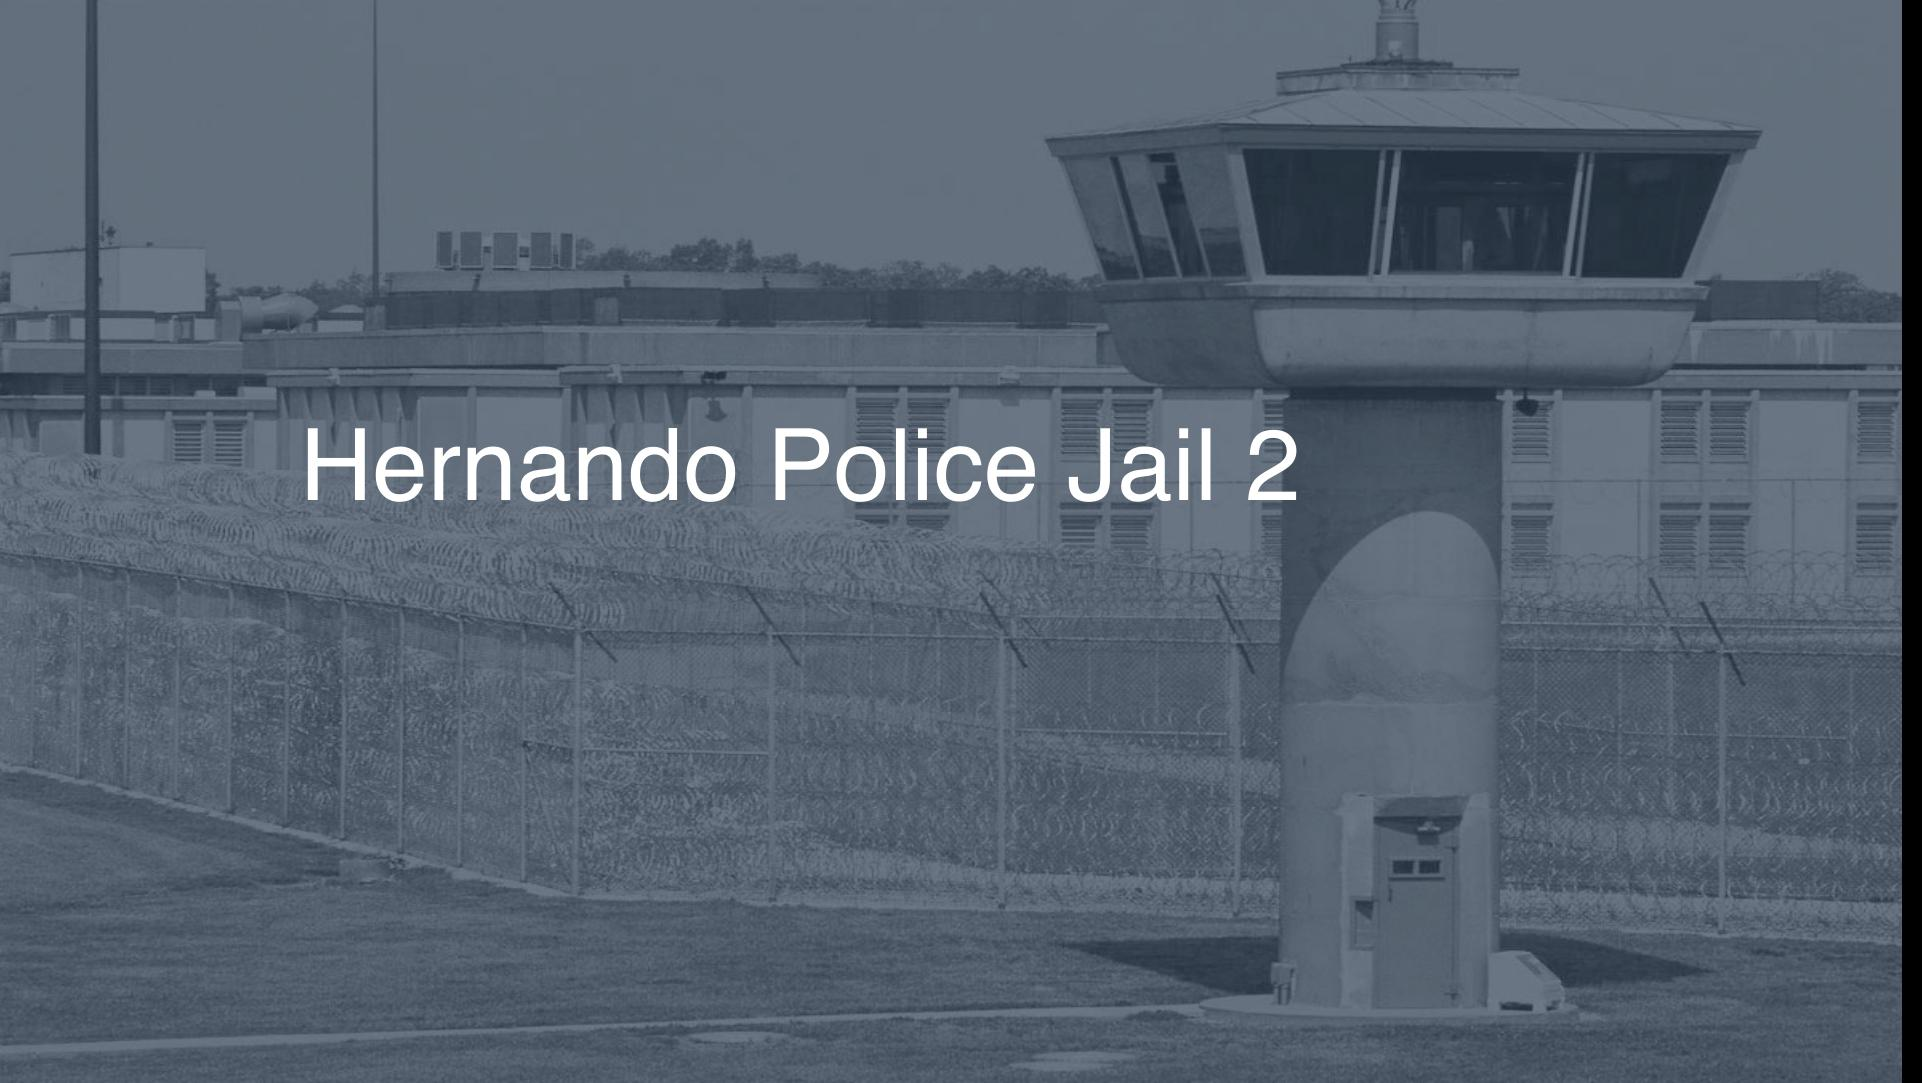 Hernando Police Jail correctional facility picture